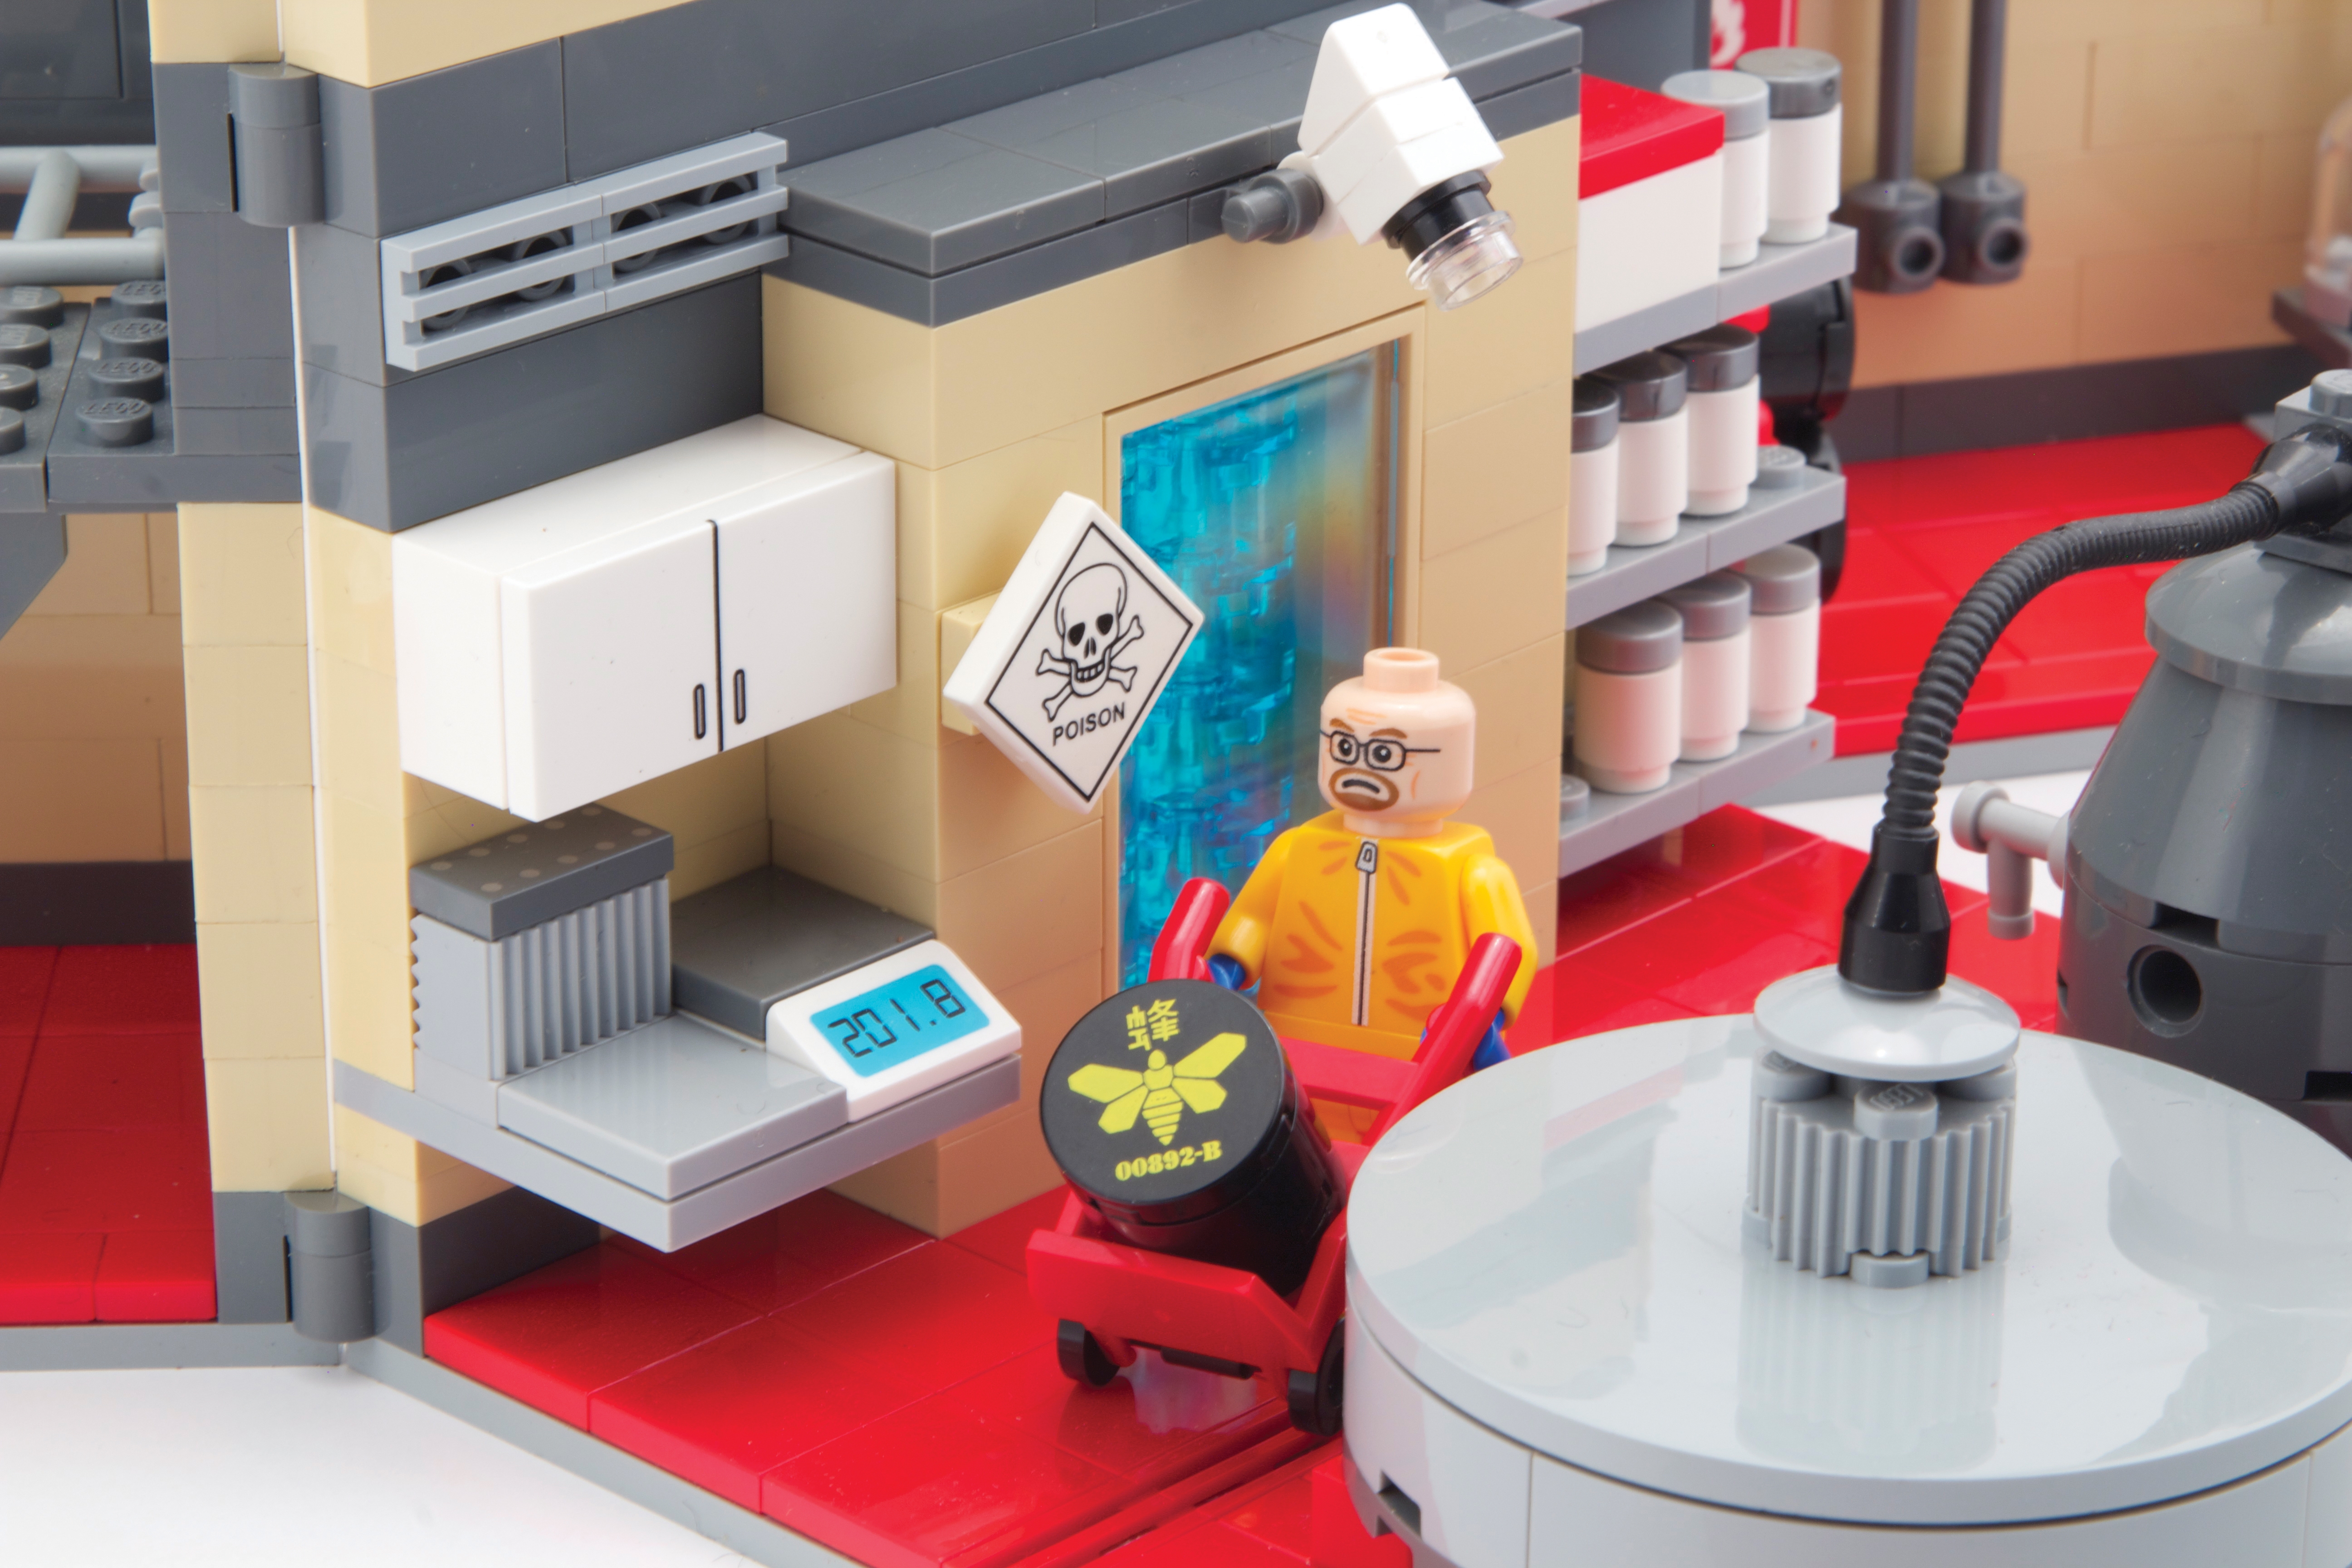 More LEGO, More Doctor Who